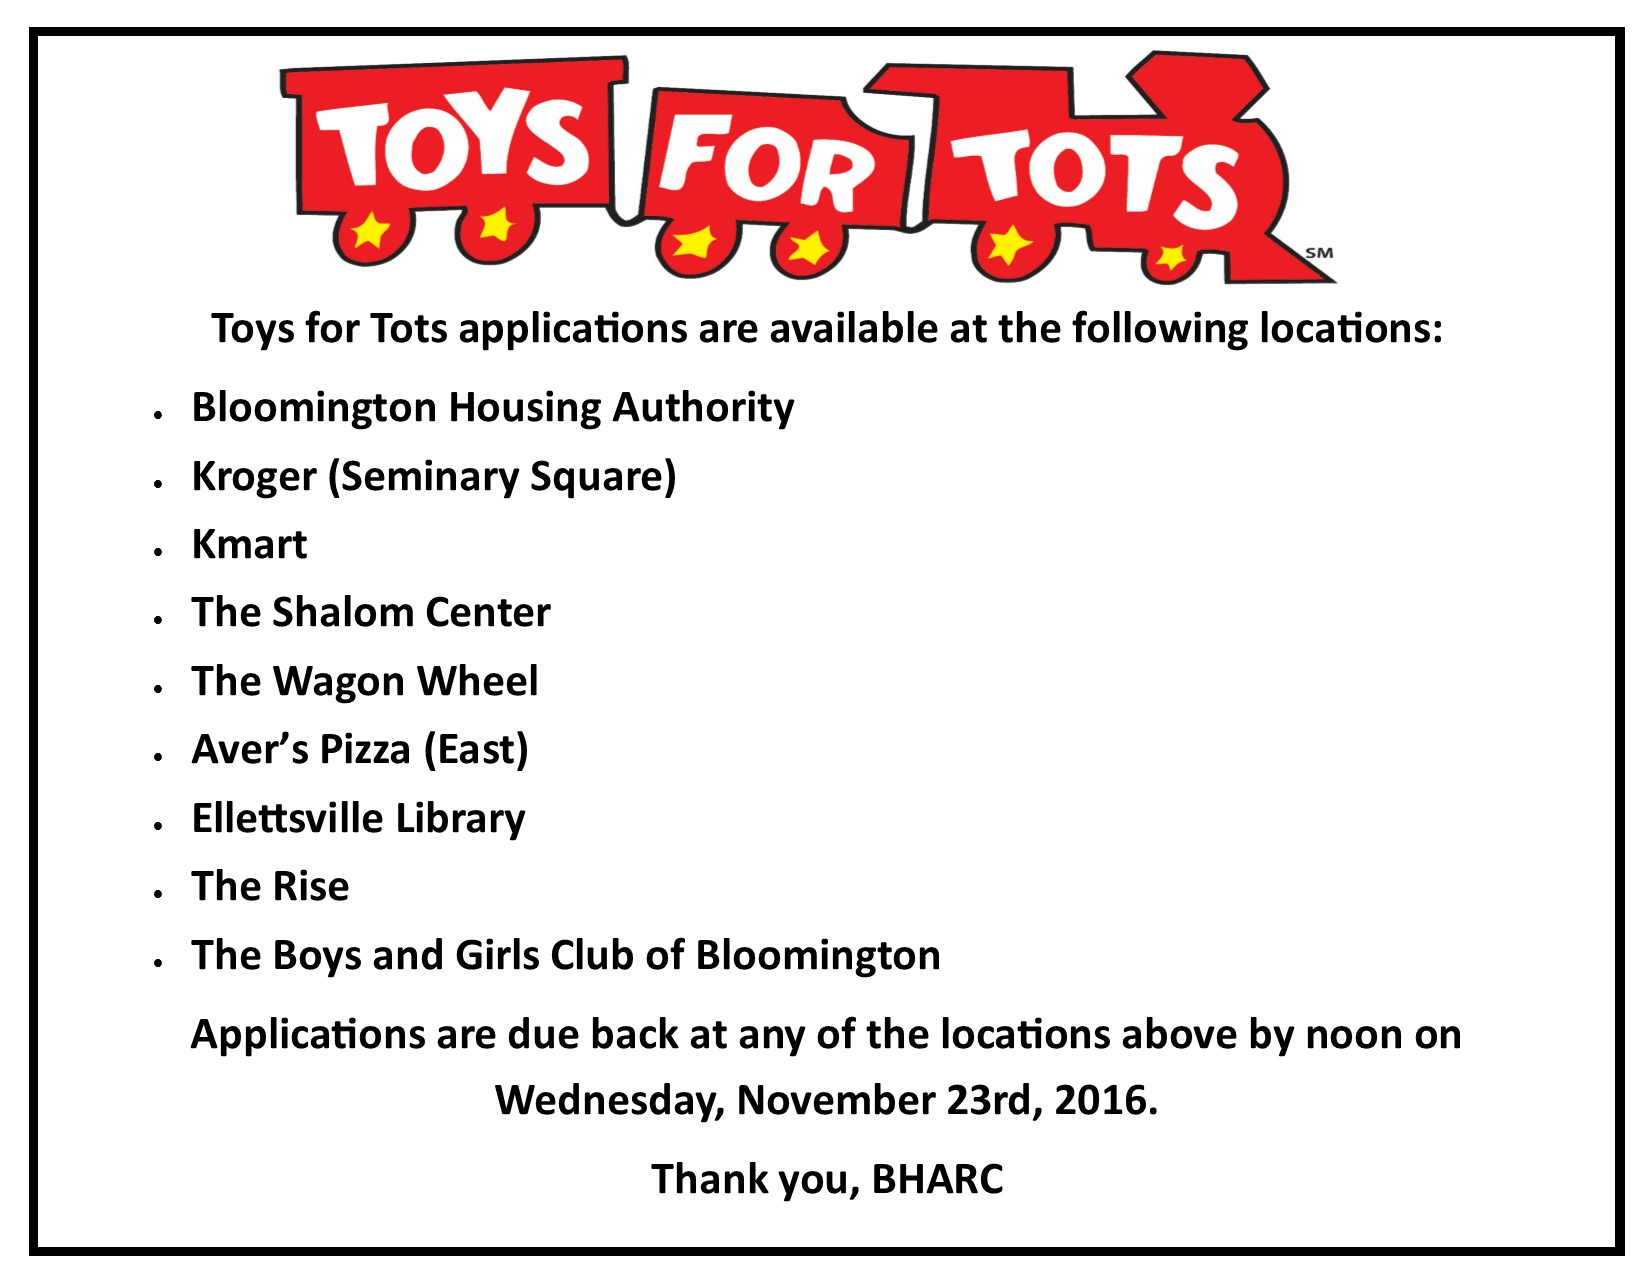 Form 501c3 Toys For Tots : Bloomington housing authority toys for tots deadline